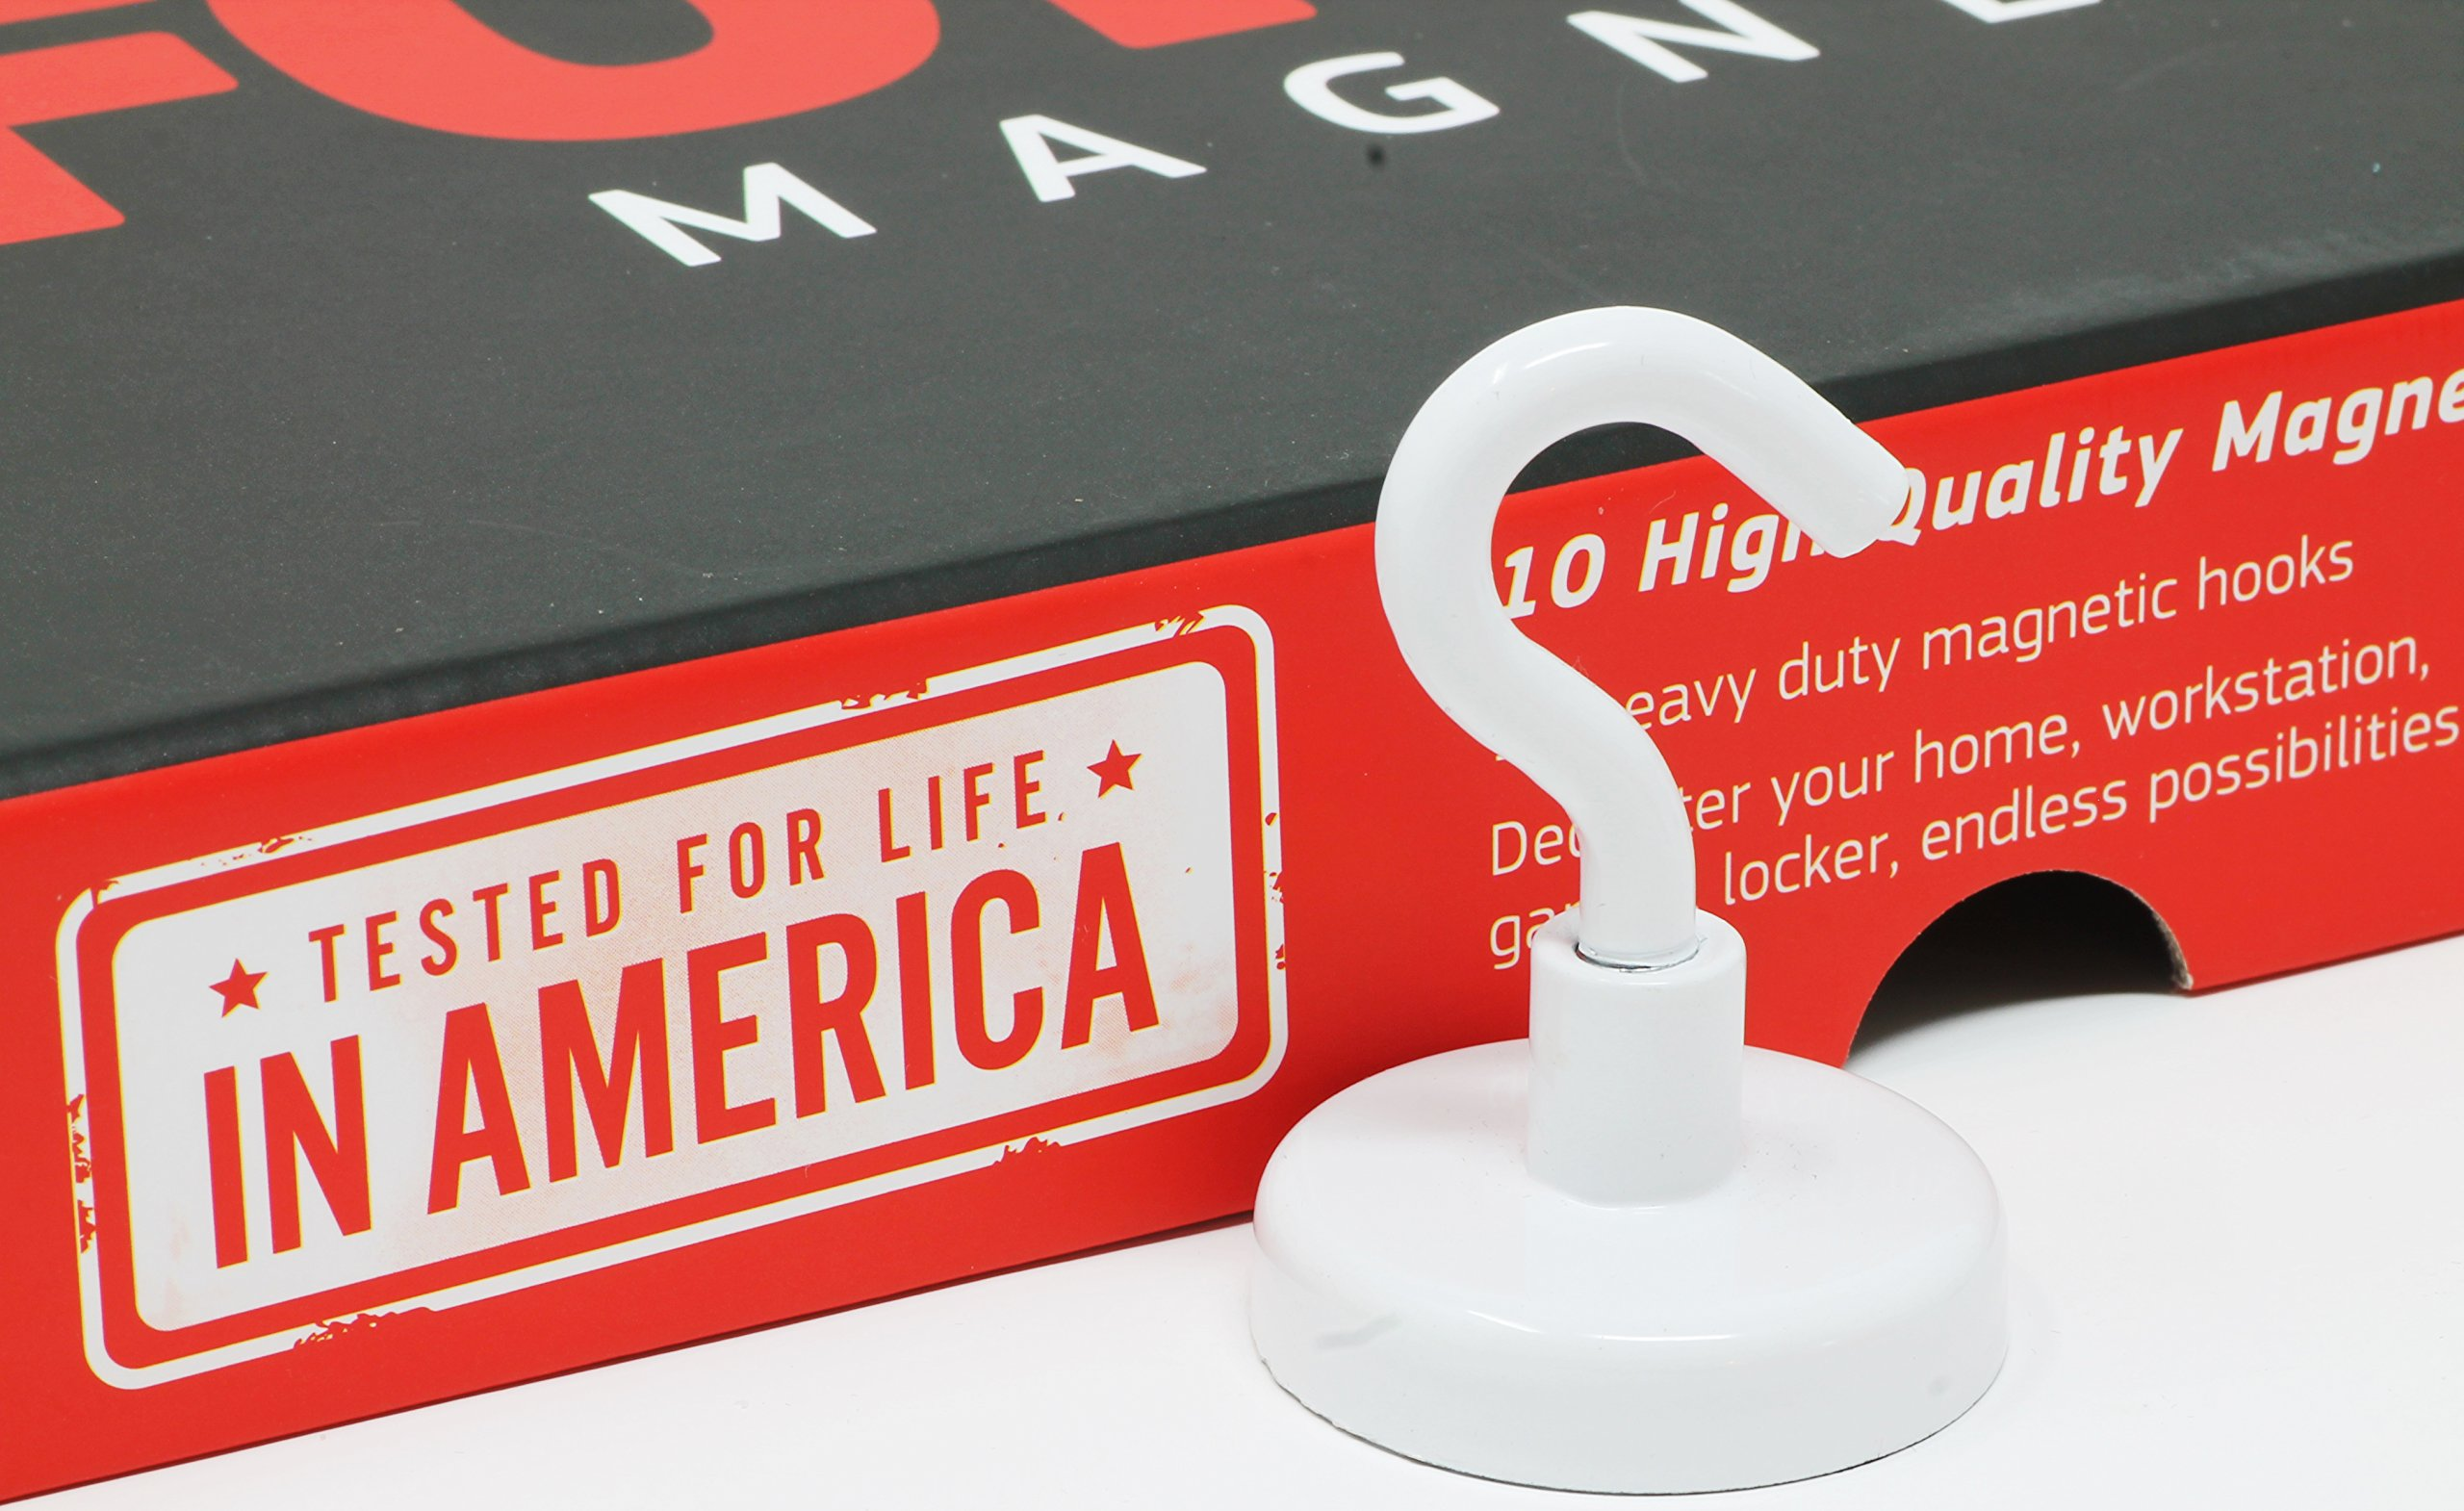 Force Magnet Magnetic Hooks - 10 Magnetic Hooks, Heavy Duty Steep, Comes with Bonus No-Scratch Pads to Protect Your Surfaces. Ideal for Home, Kitchen, Workplace,Office, Garage, (White)